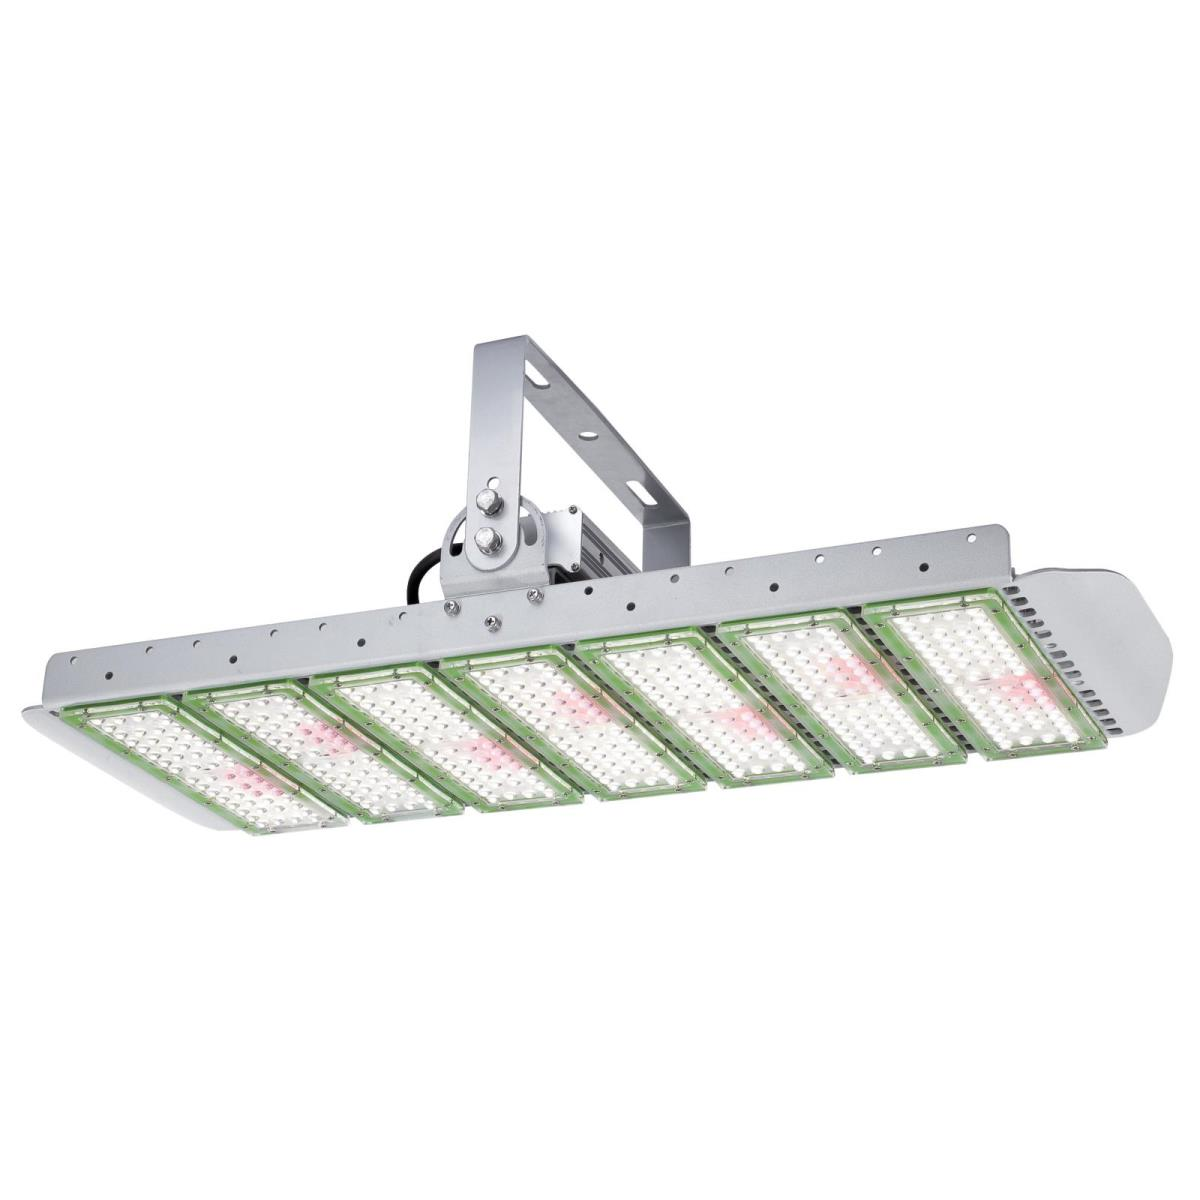 330W Broad Spectrum LED Horticultural Fixture